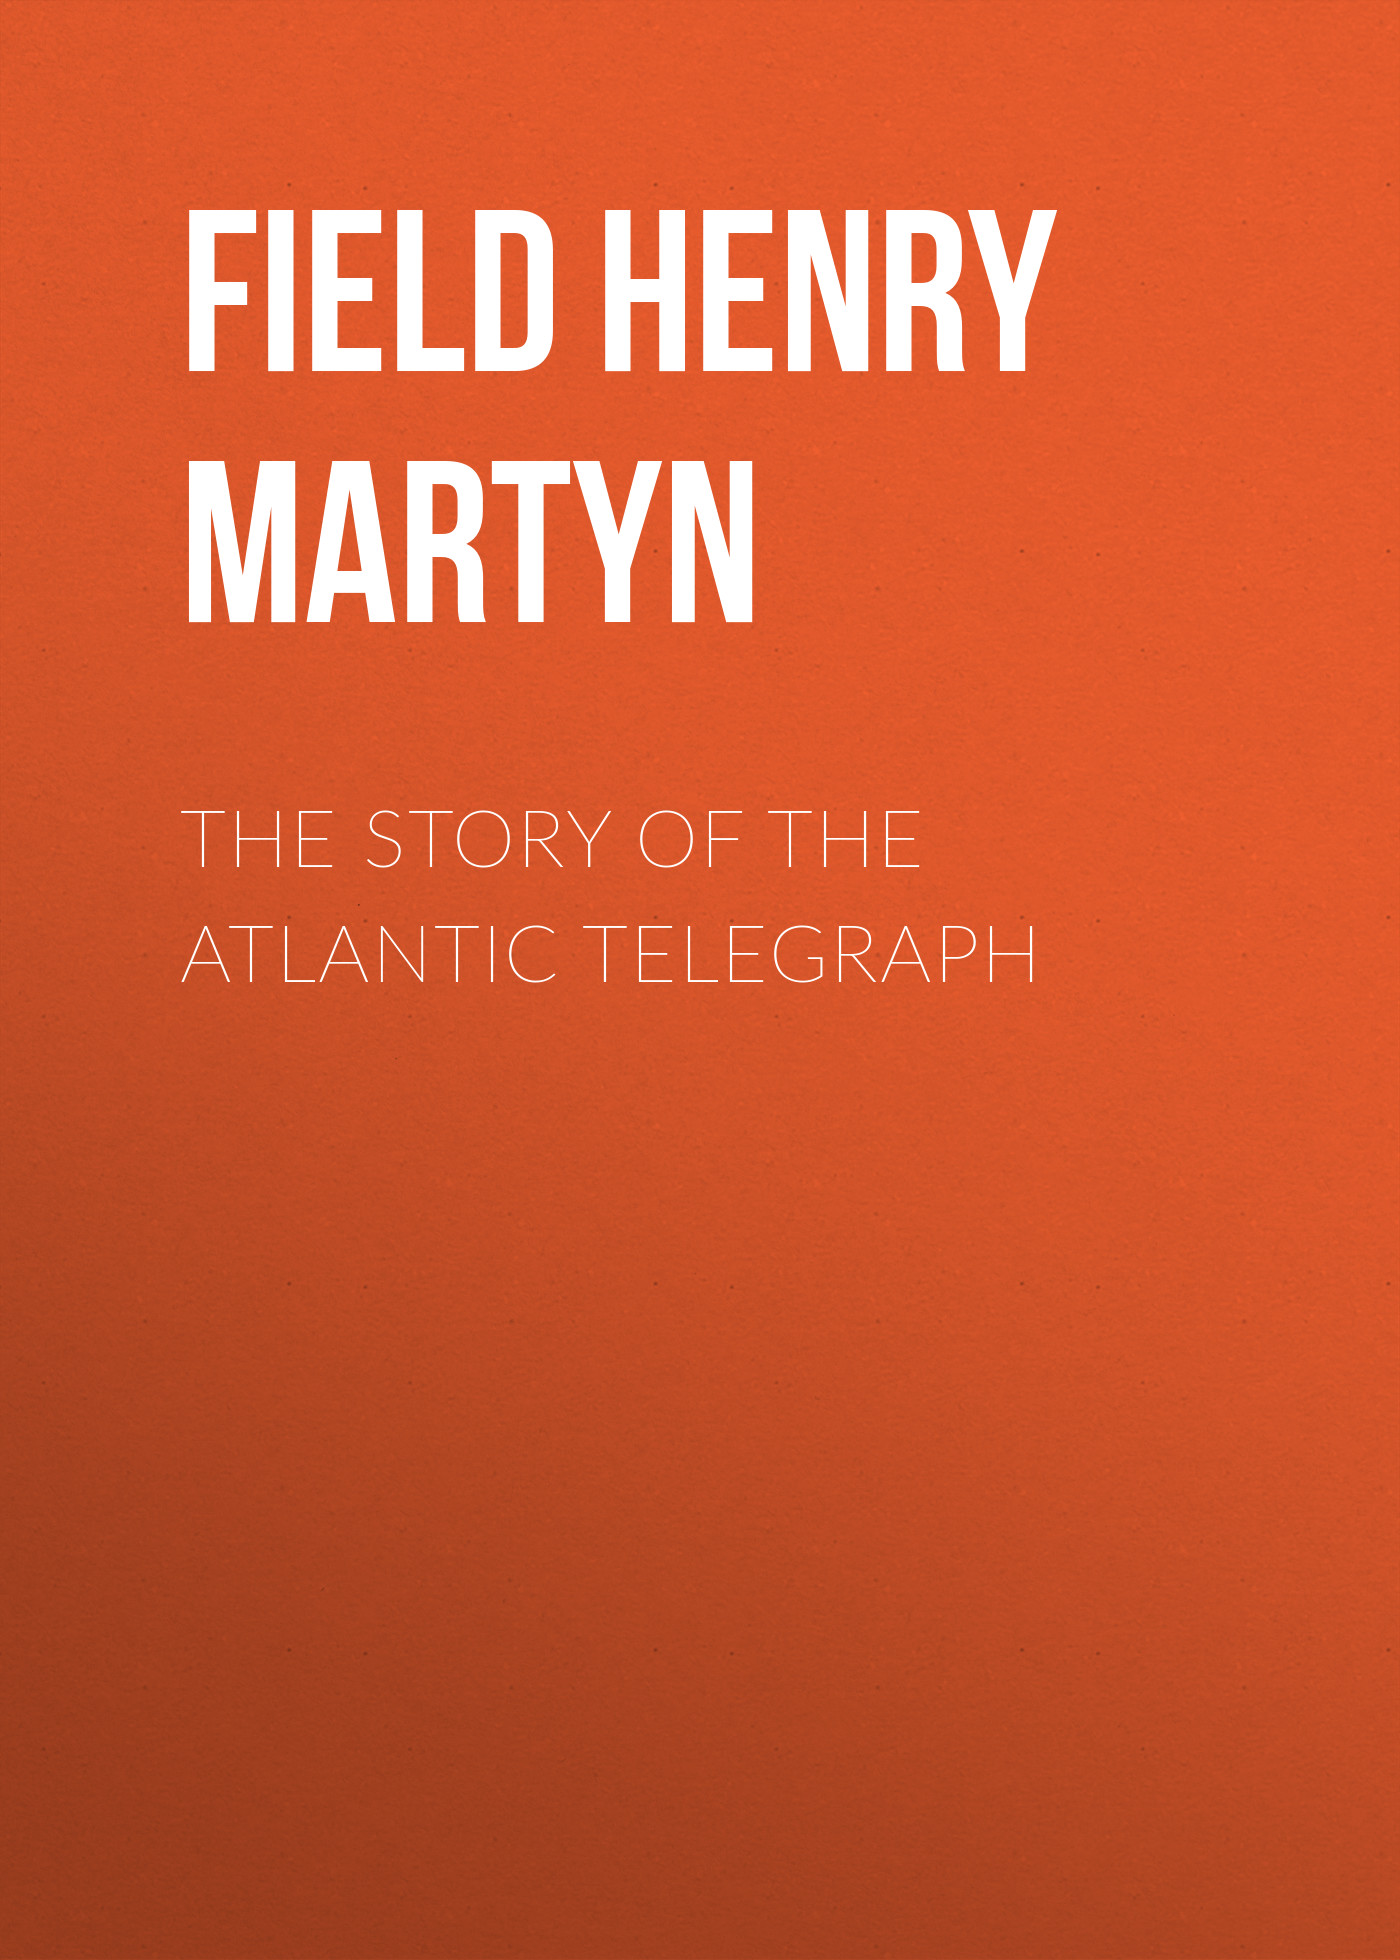 Field Henry Martyn The Story of the Atlantic Telegraph henry james the europeans